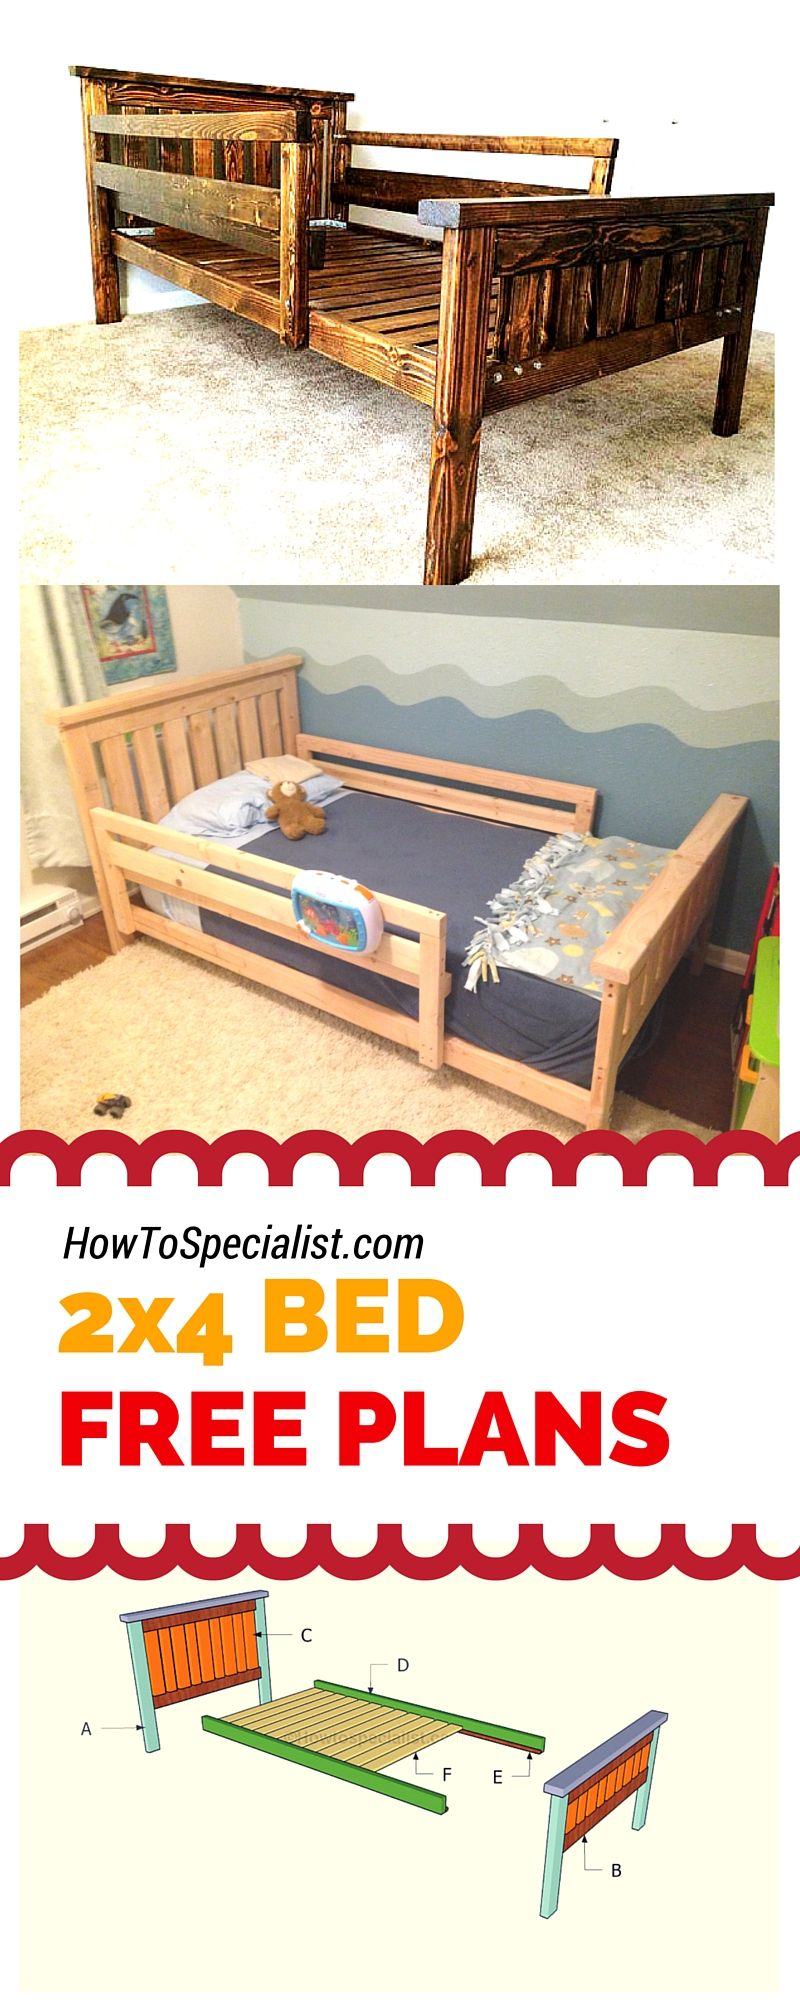 2 4 Bed Plans Diy Toddler Bed Diy Bed Frame Diy Bed